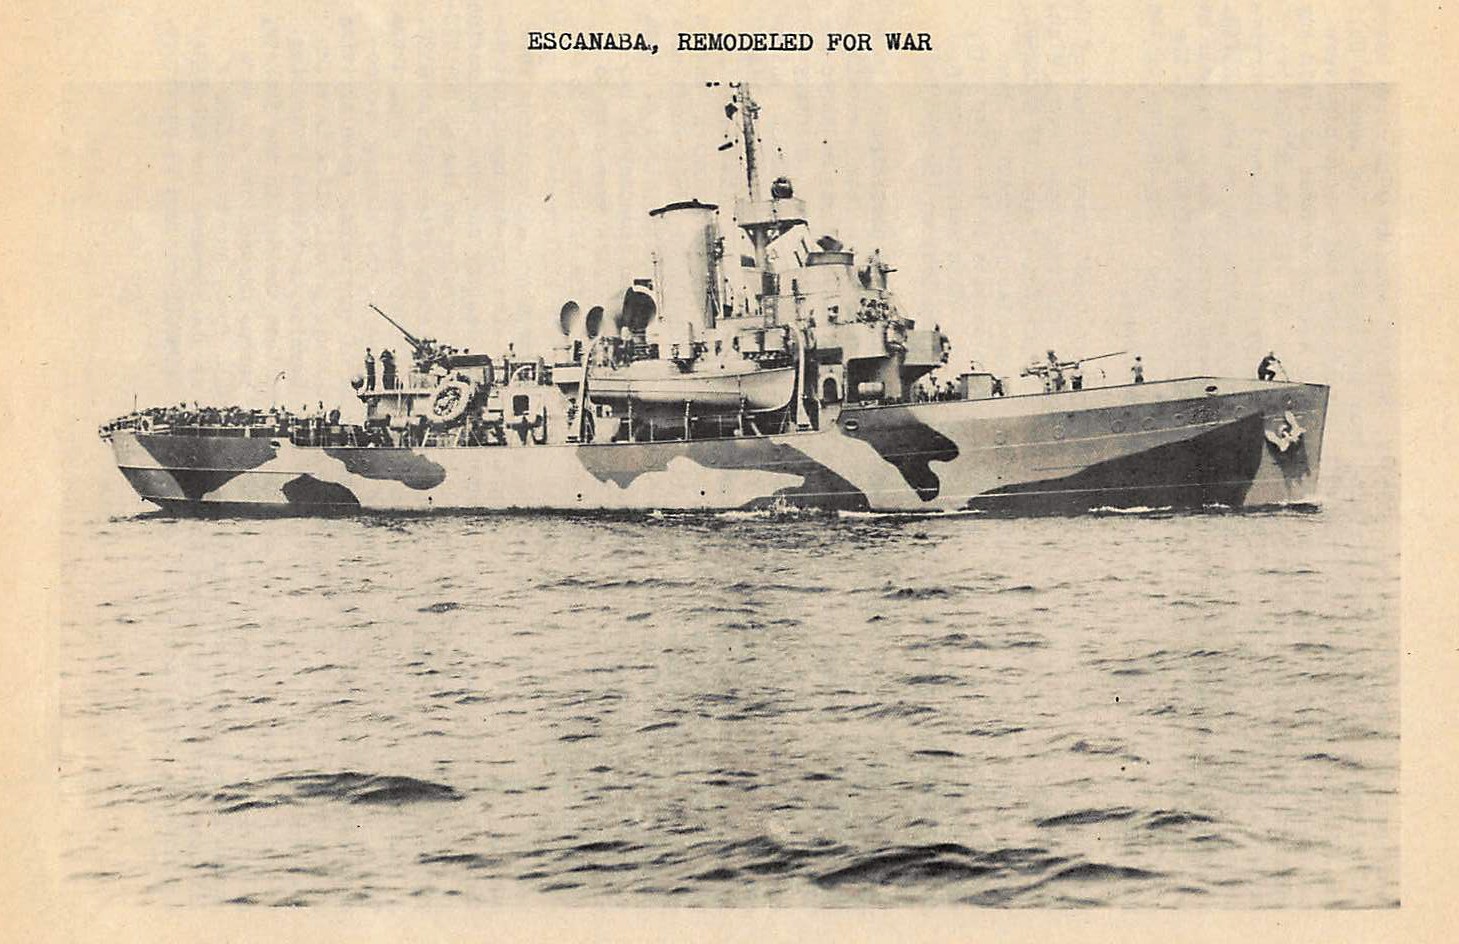 The C.G.C. Escanaba Remodeled for War